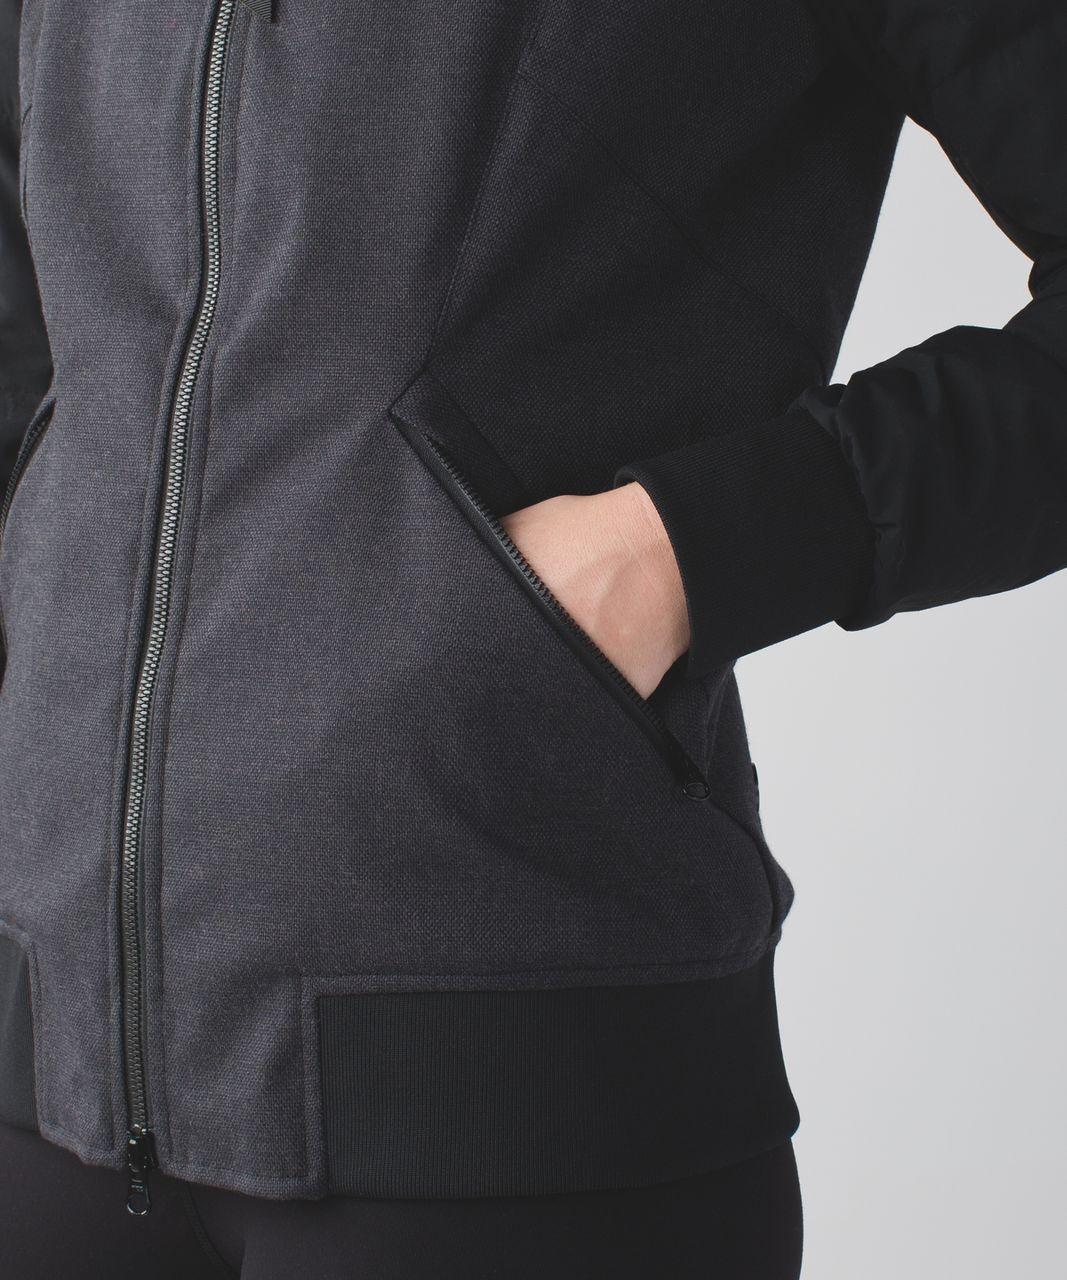 Lululemon Chilly Bomber - Black / Heathered Deep Coal